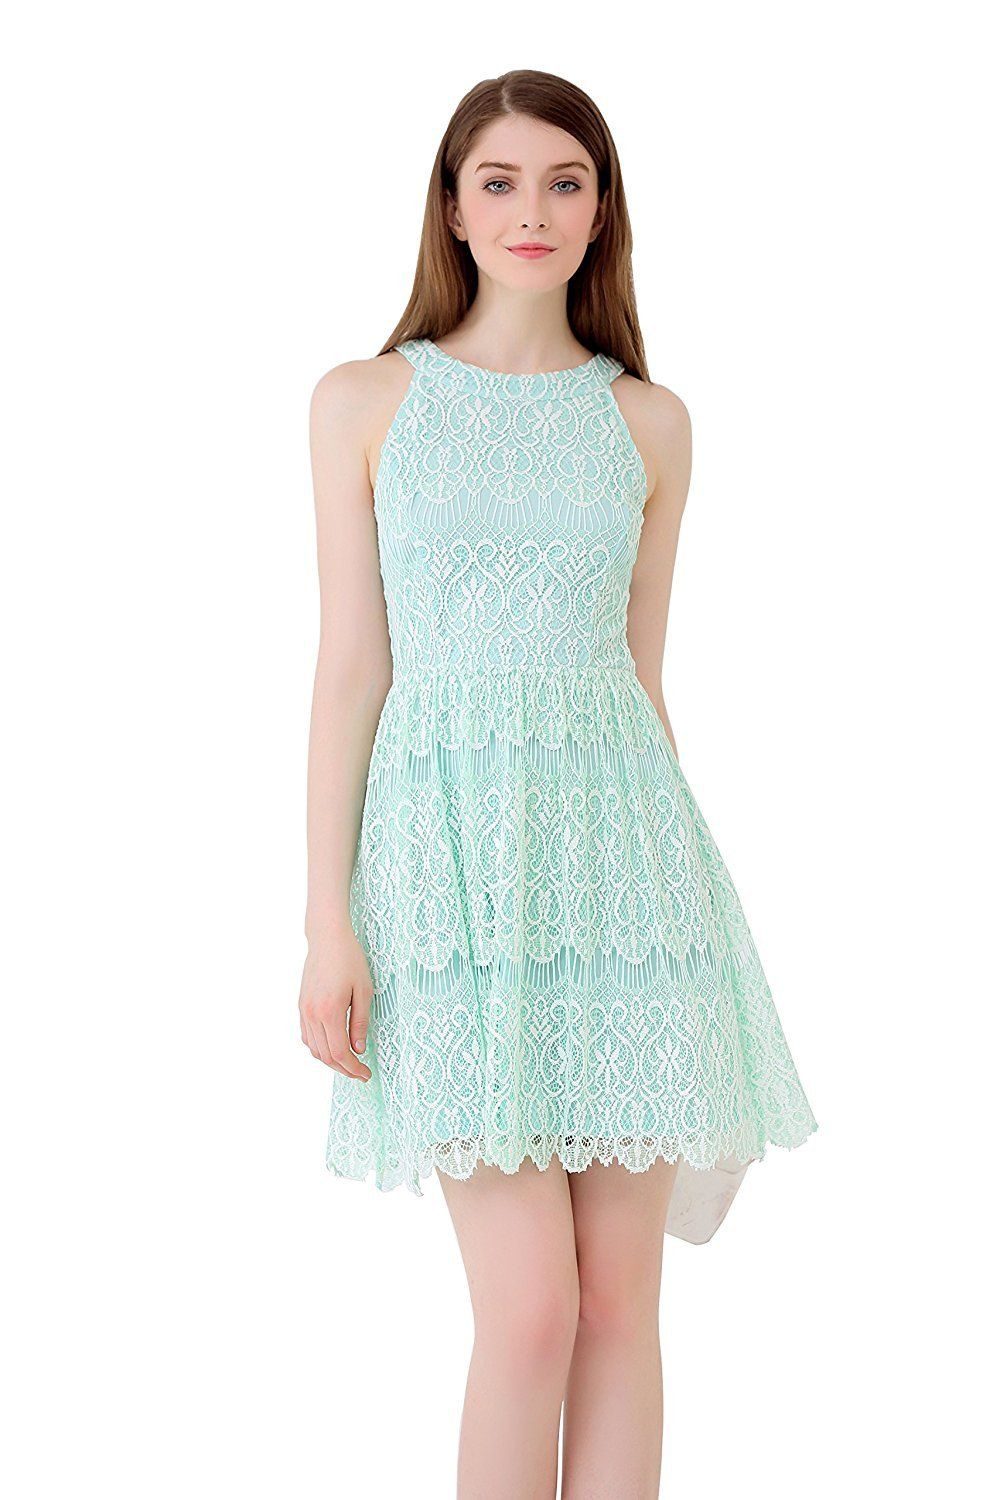 Up Ultrapink Junior Womens Allover Lace Halter Dress Mesh